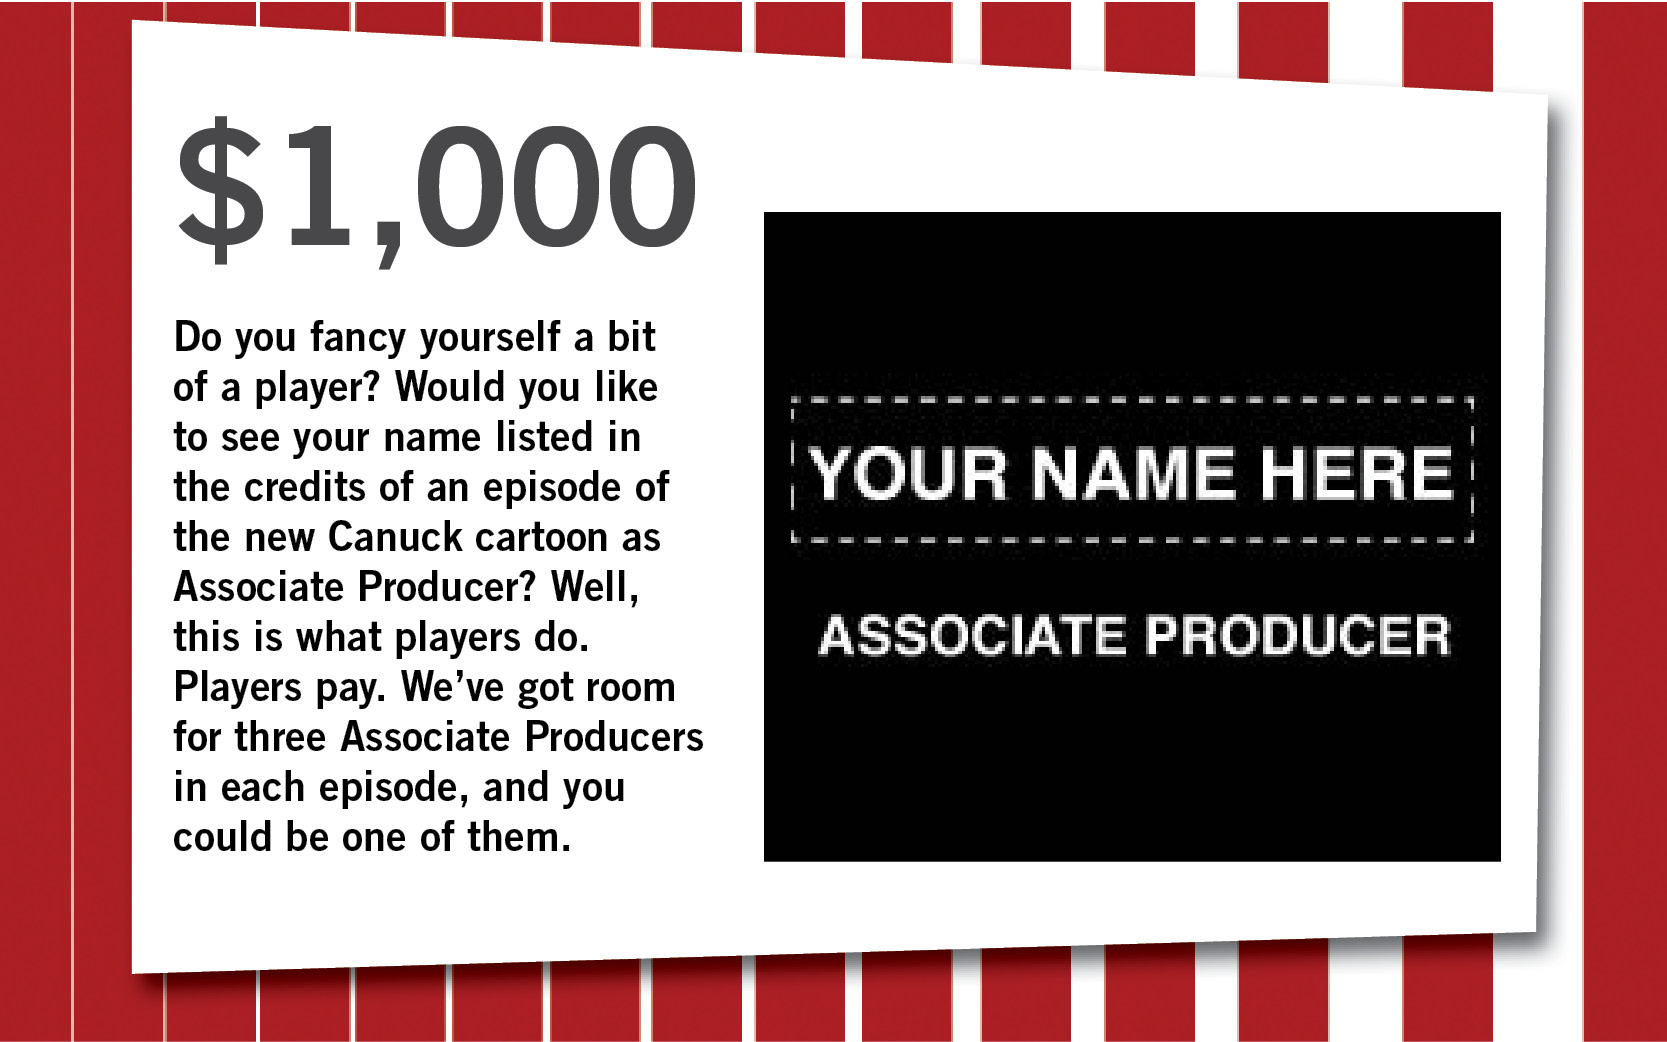 Do you fancy yourself a bit of a player? Would you like to see your name listed in the credits of an episode of the new Canuck cartoon as Associate Producer? Well, this is what players do. Players pay. We've got room for three Associate Producers in each episode, and you could be one of them.